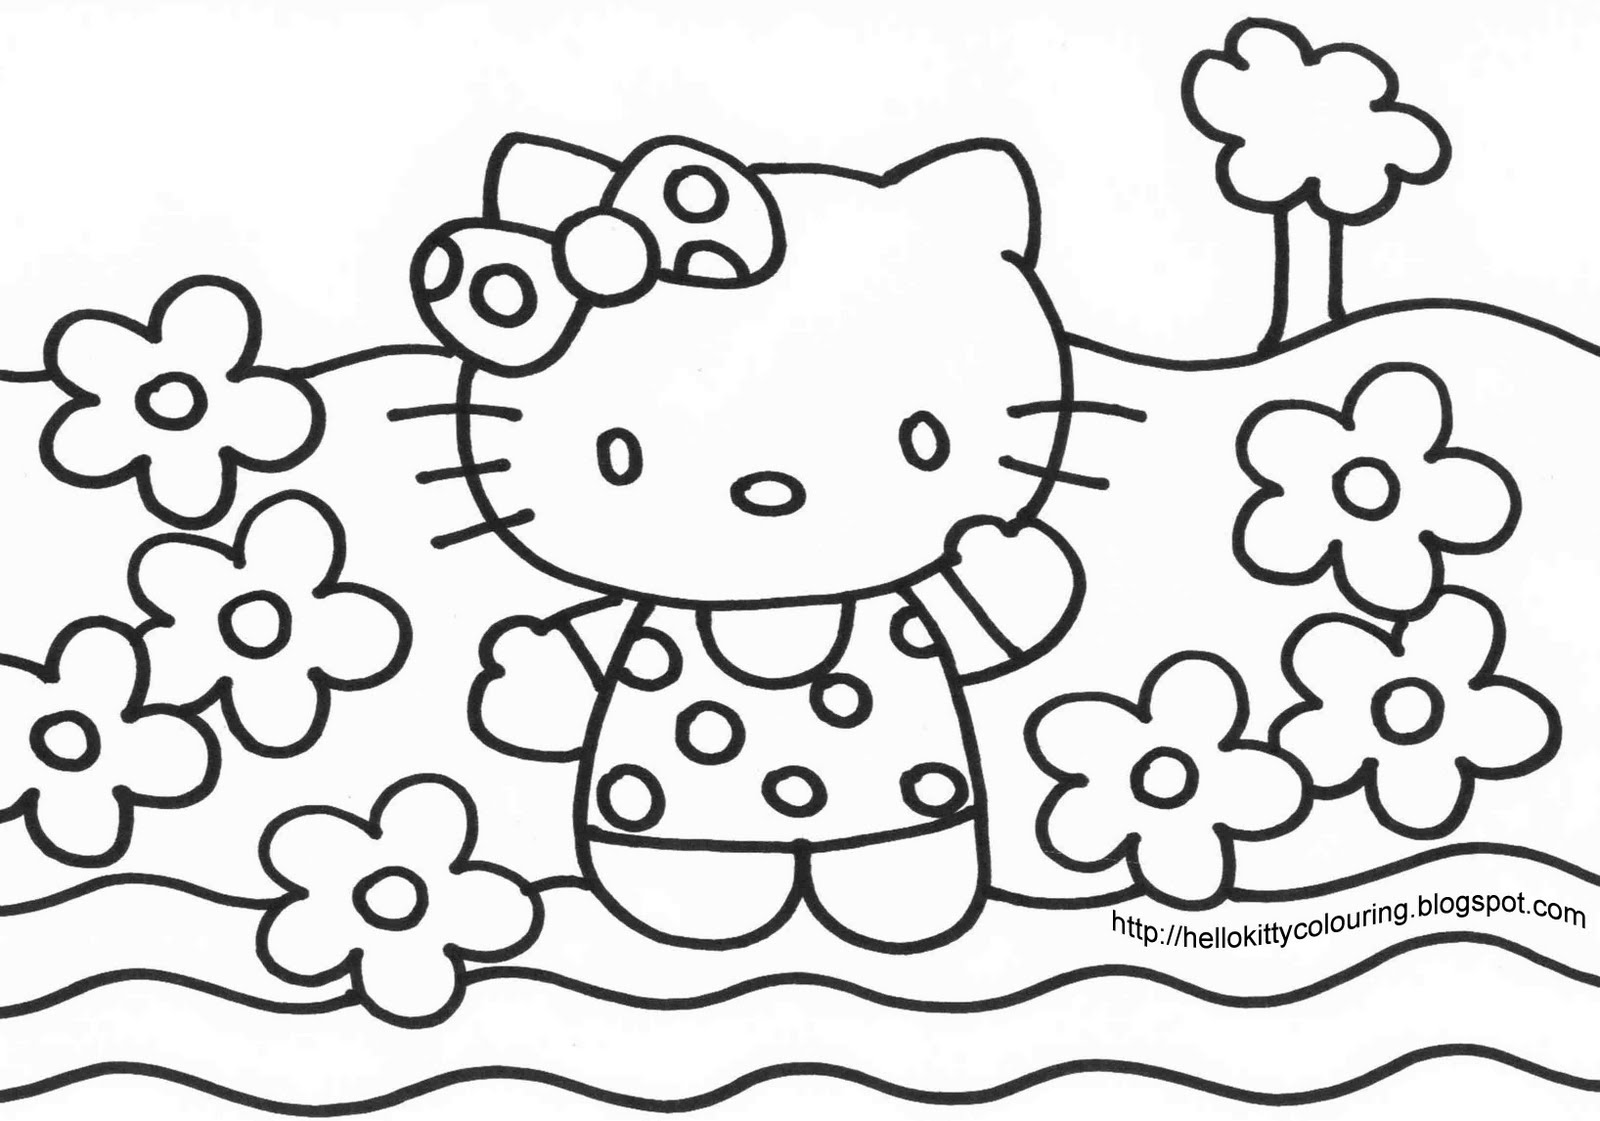 Hello Kitty Coloring Pages #2